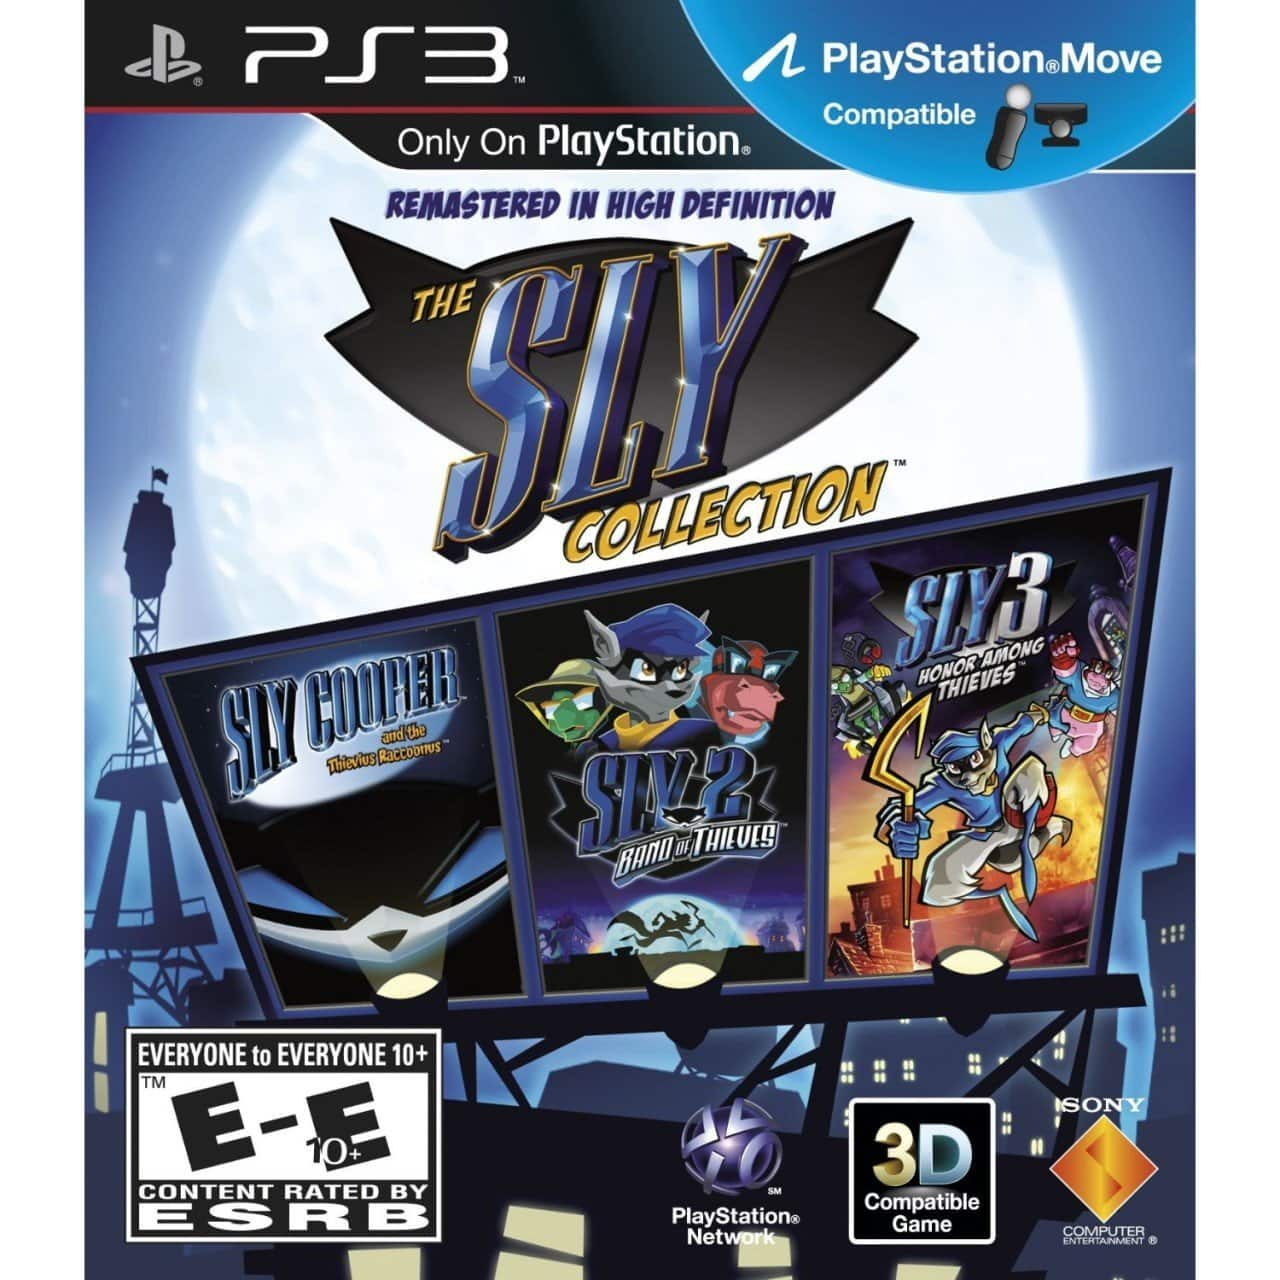 The Sly Cooper Collection (PS3 Download Code) - $2.75, 20% PSN Discount Code - $3.49, Email Delivery